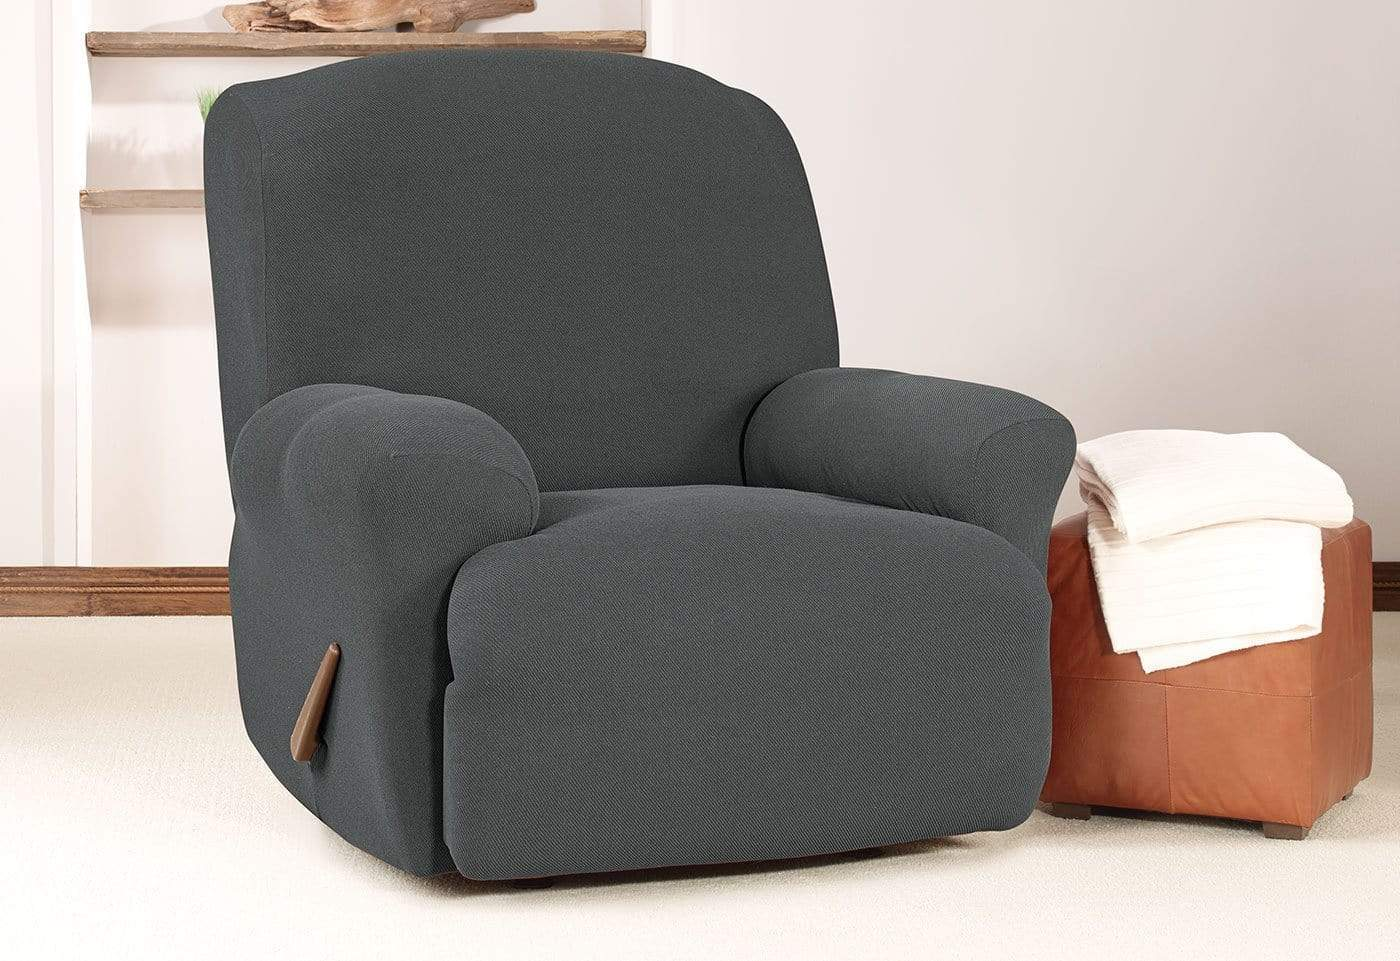 Simple Stretch Twill One Piece Recliner Slipcover Form Fit Machine Washable - Recliner / Carbon